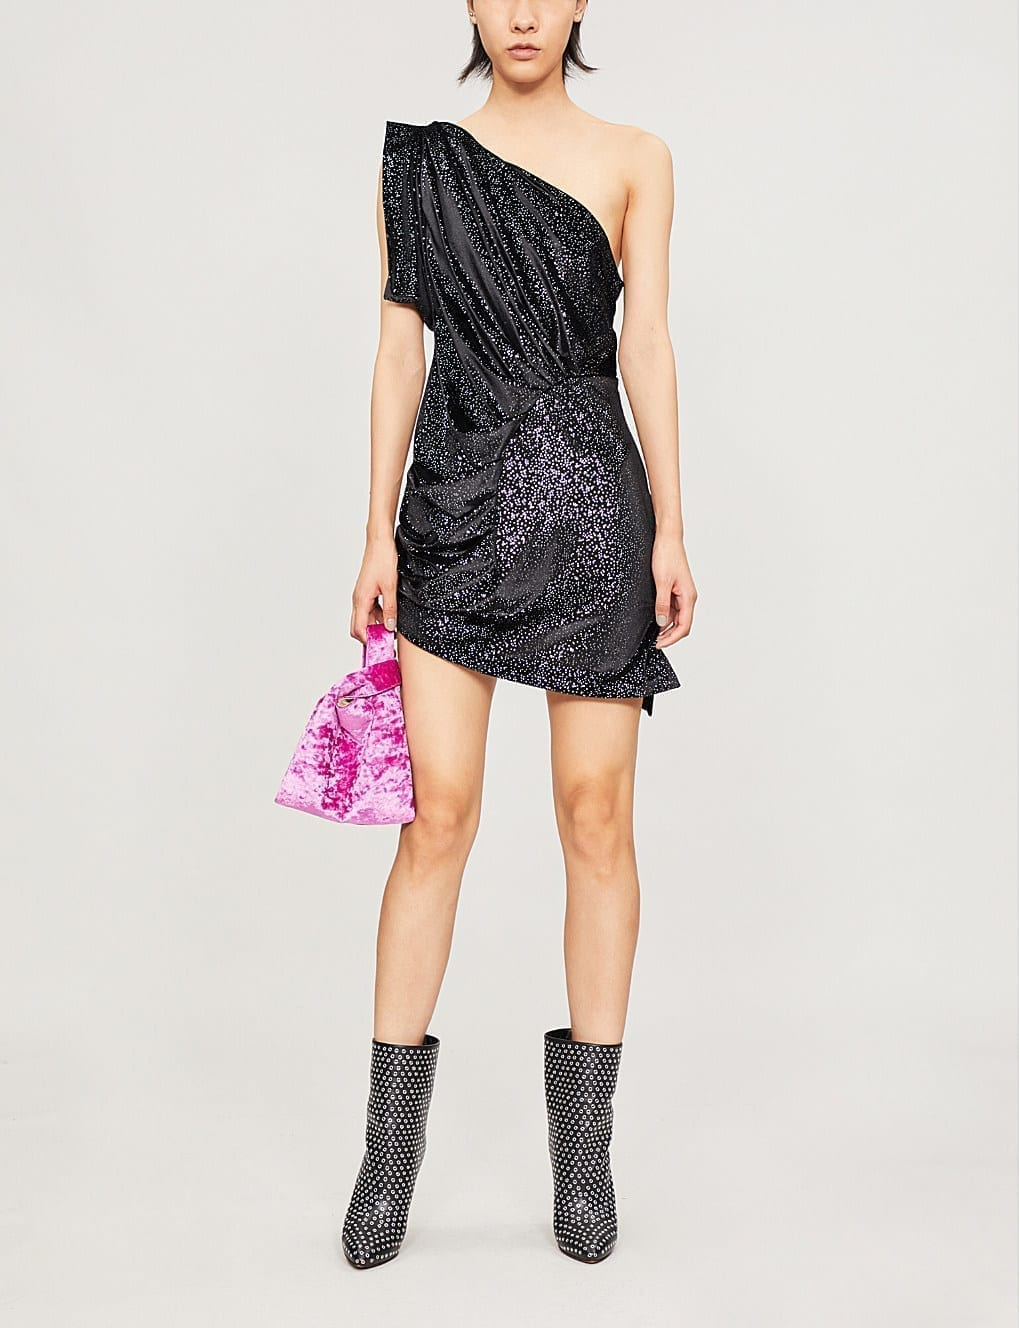 ATTICO One-Shoulder Metallic Velvet Mini Black Dress